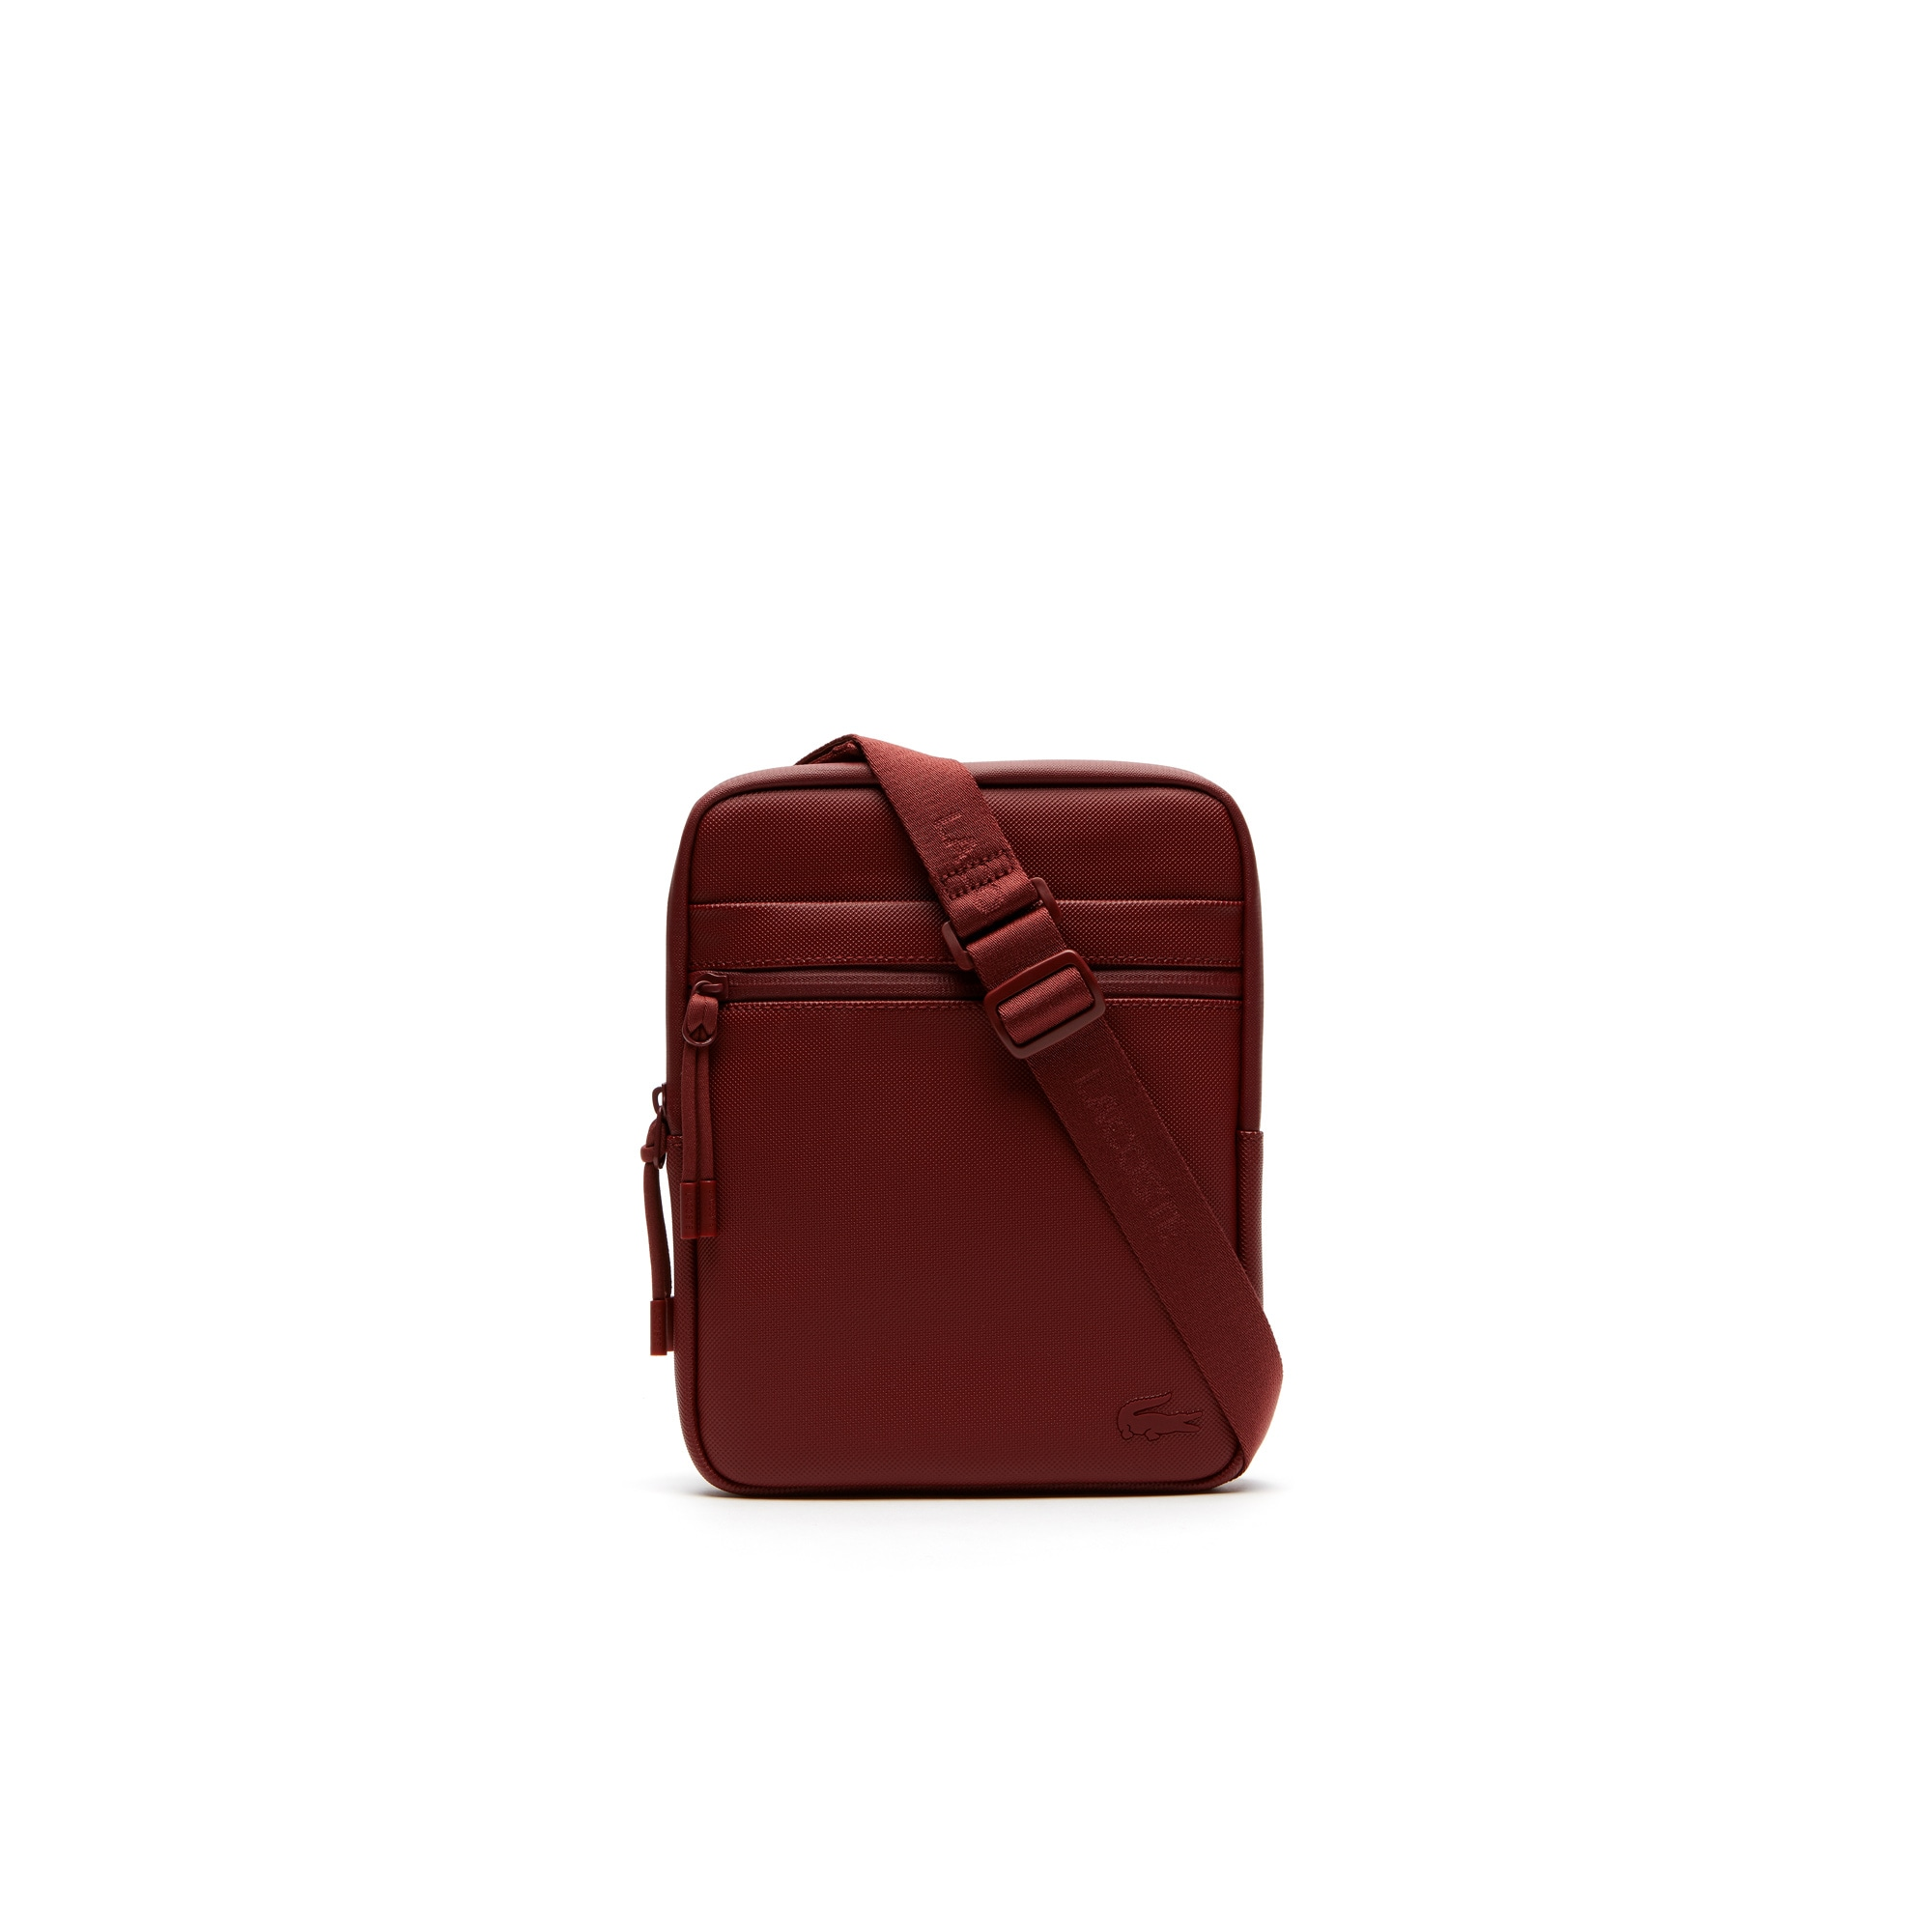 Men's L.12.12 Concept Petit Piqué Flat Zip Bag